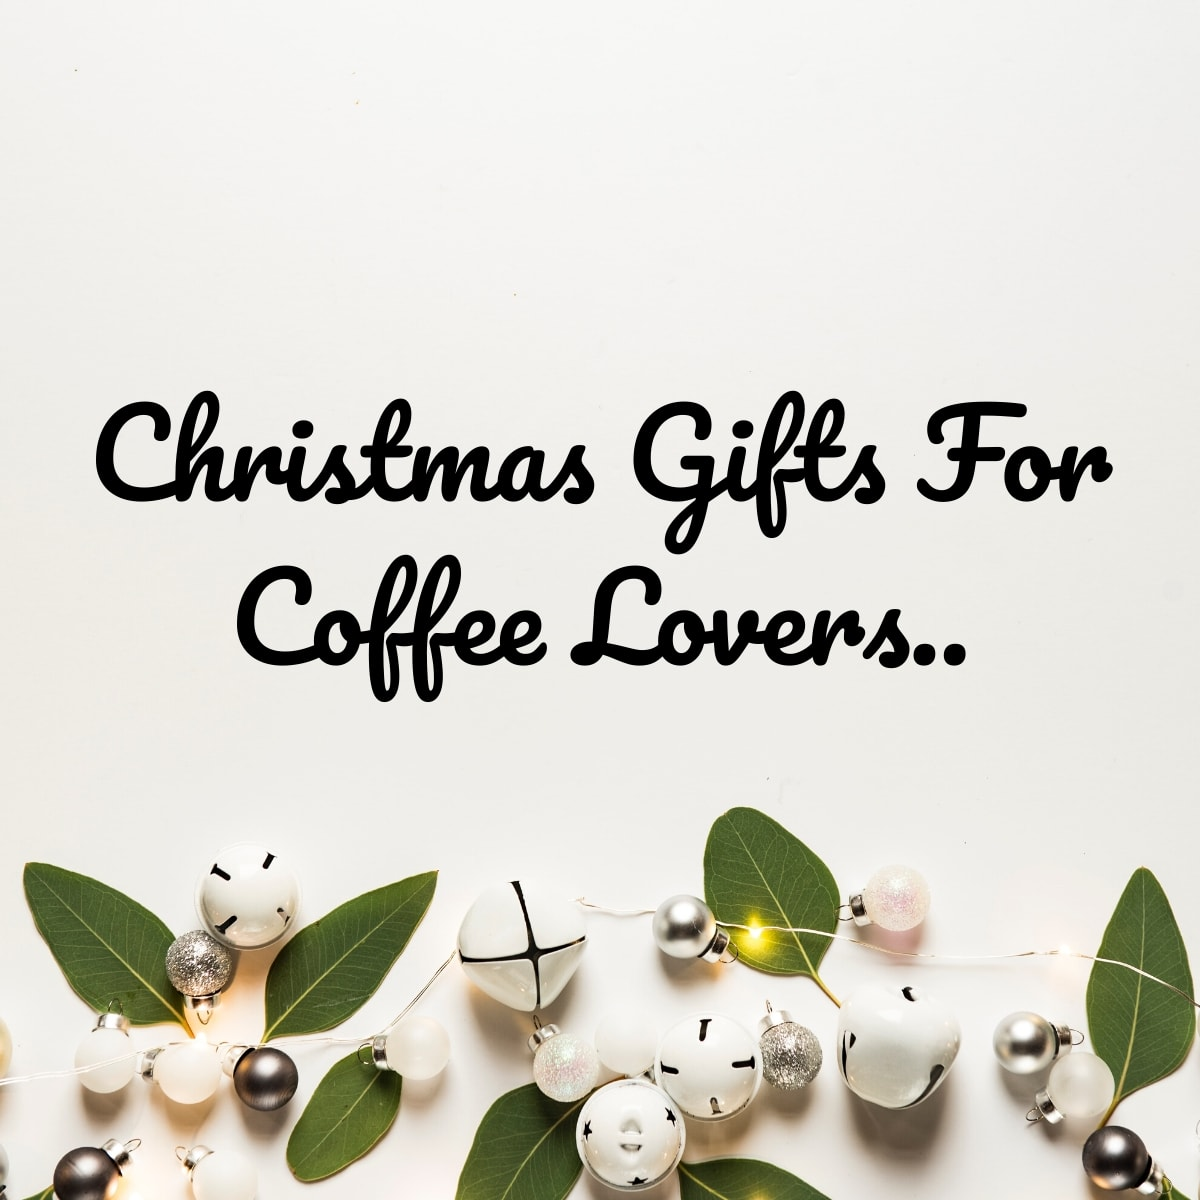 Christmas Gifts For Coffee Lovers 2020